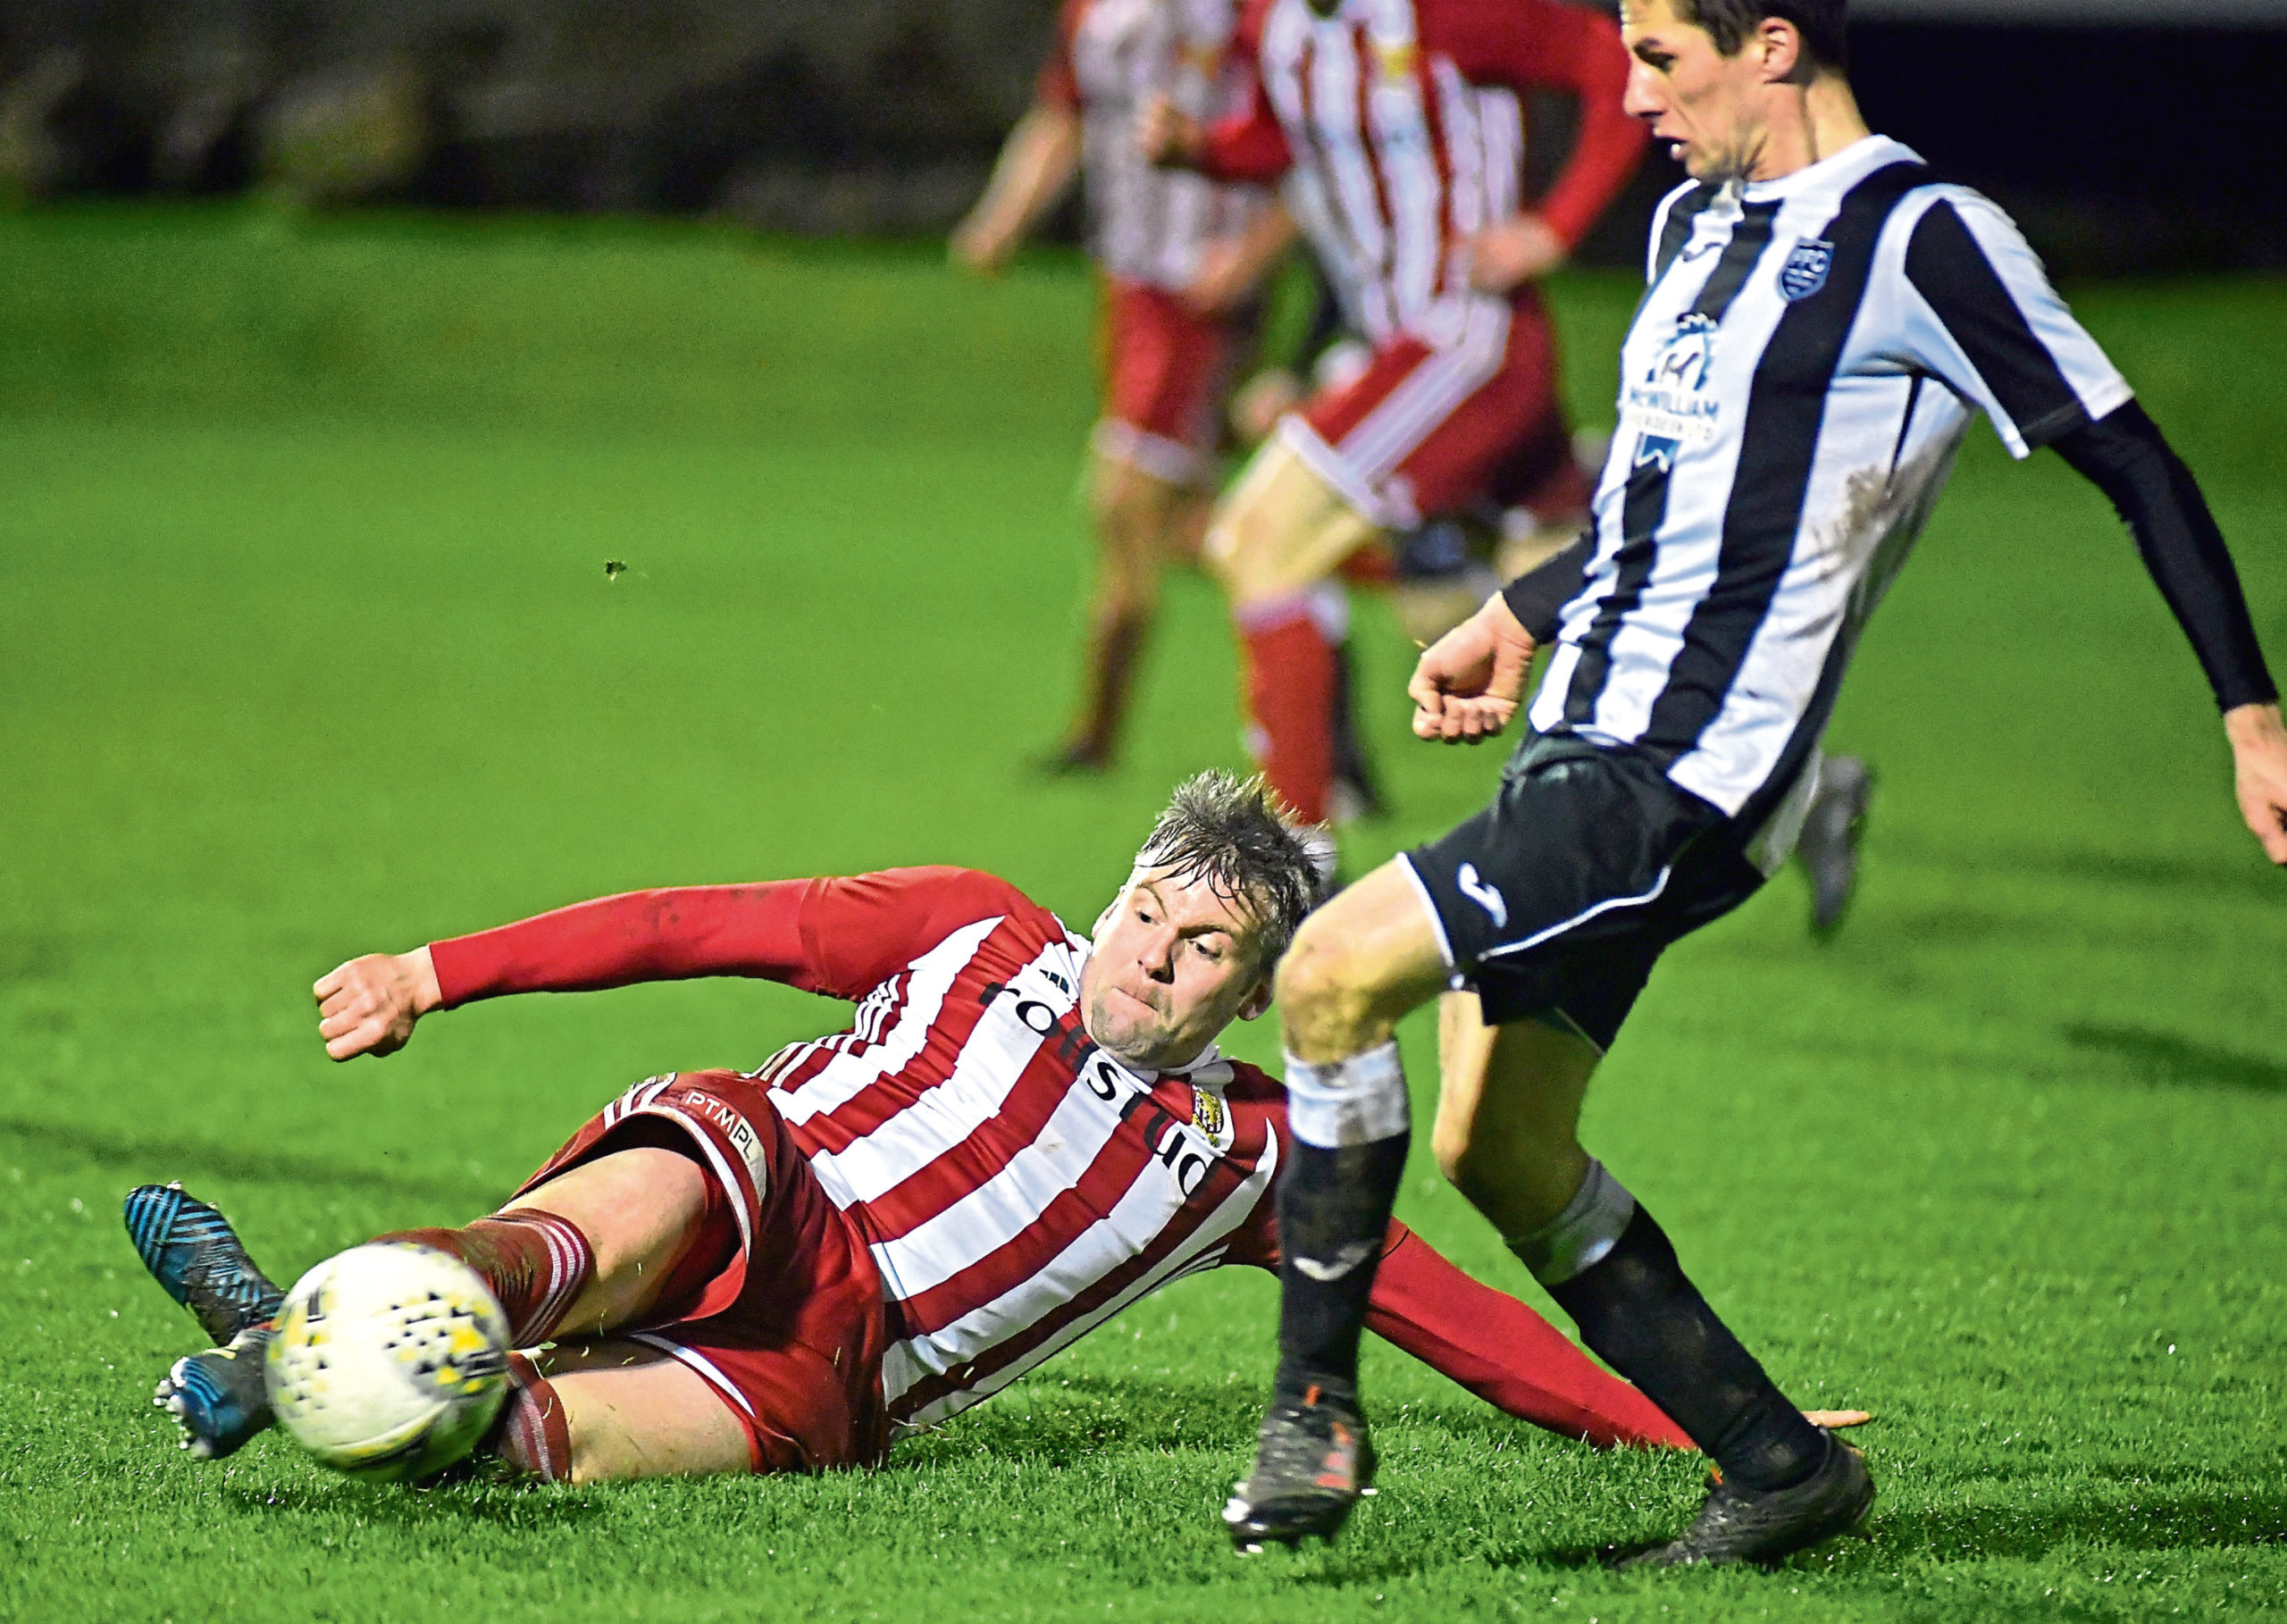 Craig McKeown, left, in action for Formartine United Pic by Chris Sumner